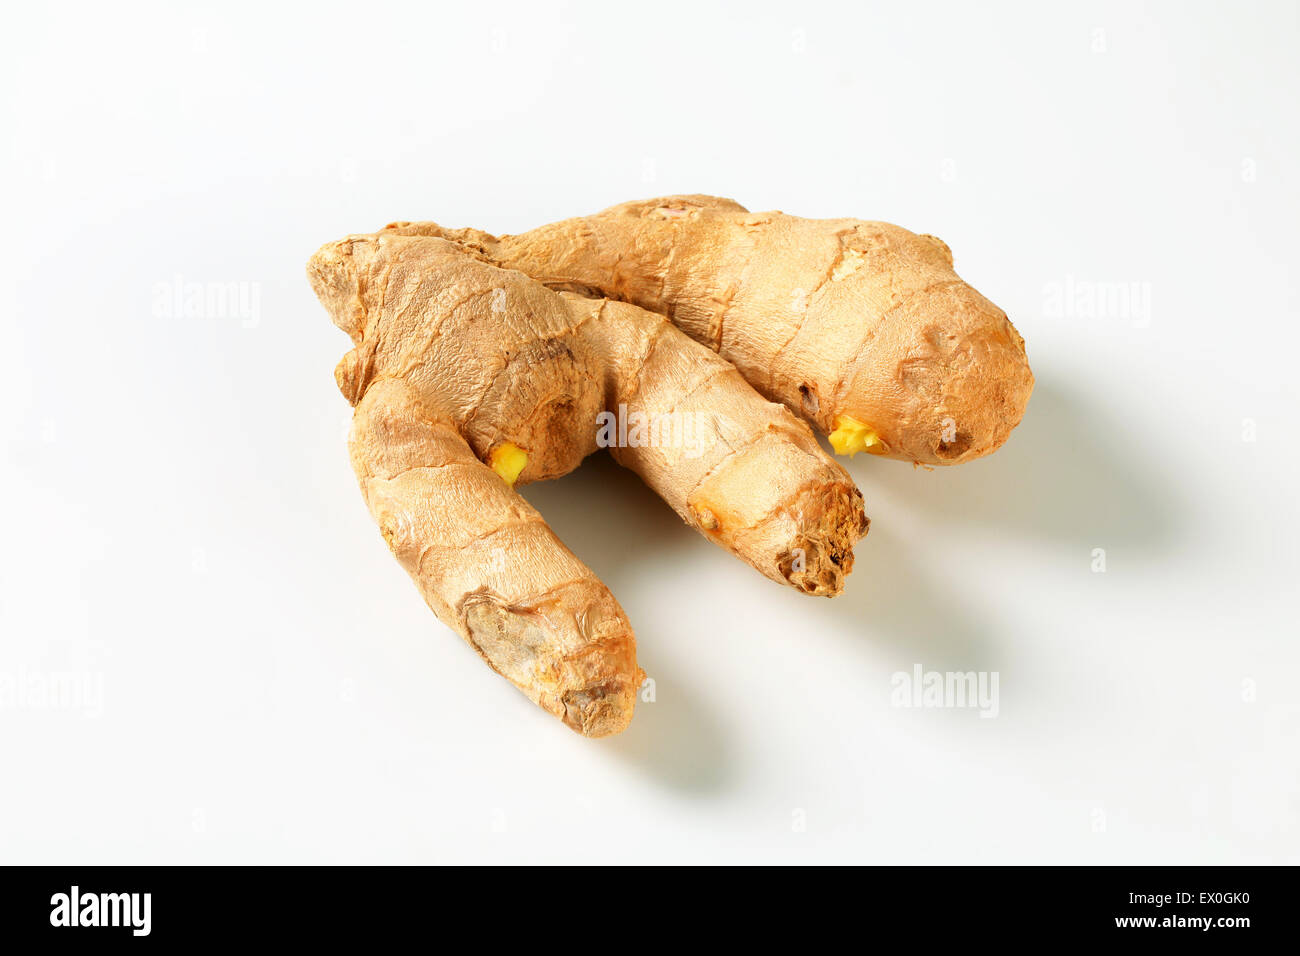 Fresh ginger root on white background - Stock Image